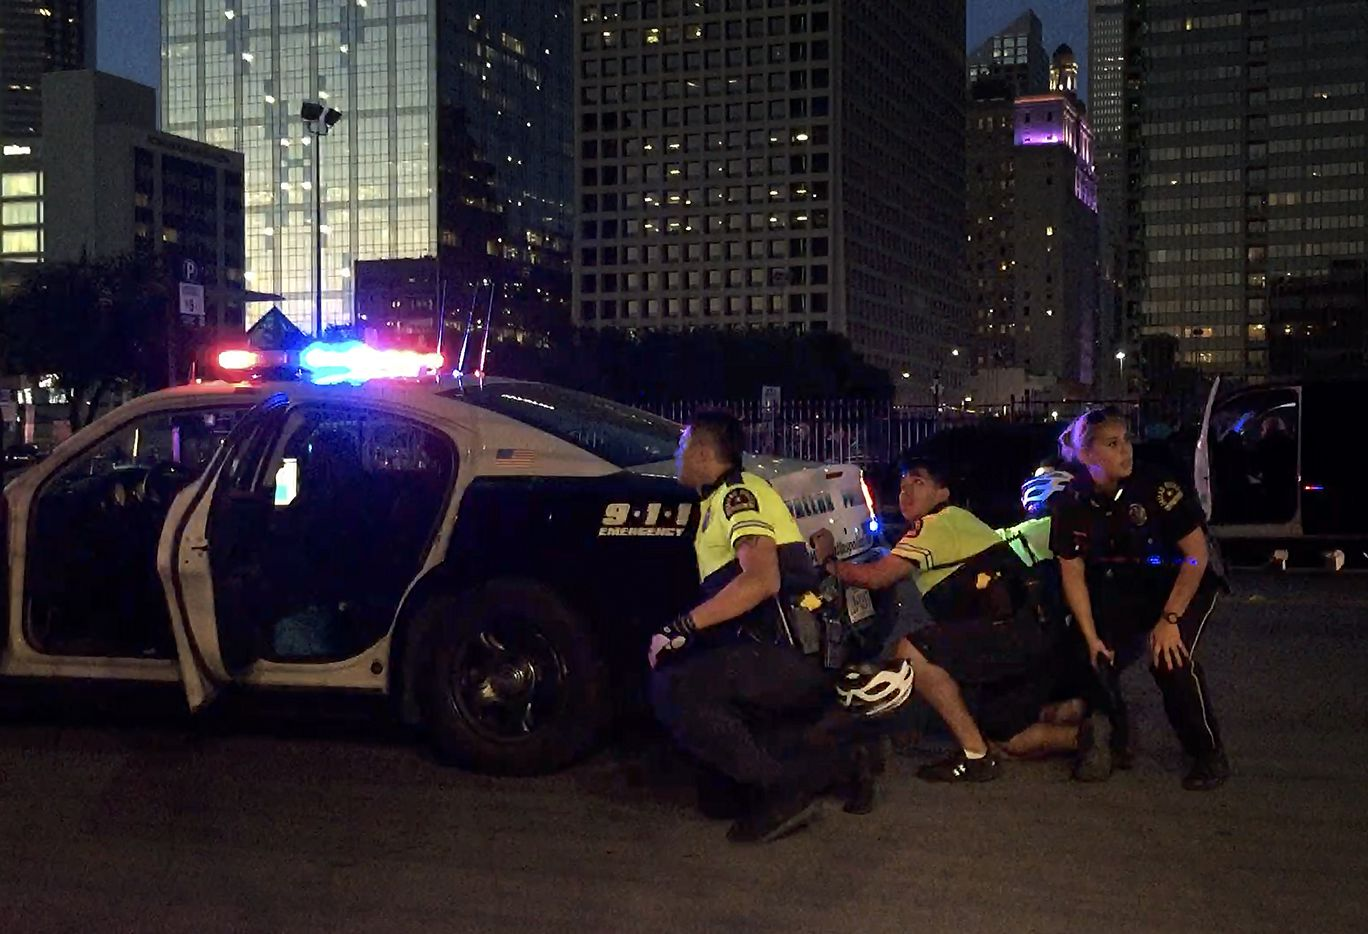 Dallas police officers took cover behind a police cruiser as shots were fired downtown on July 7, 2016. Five officers were killed when Micah Johnson opened fire.